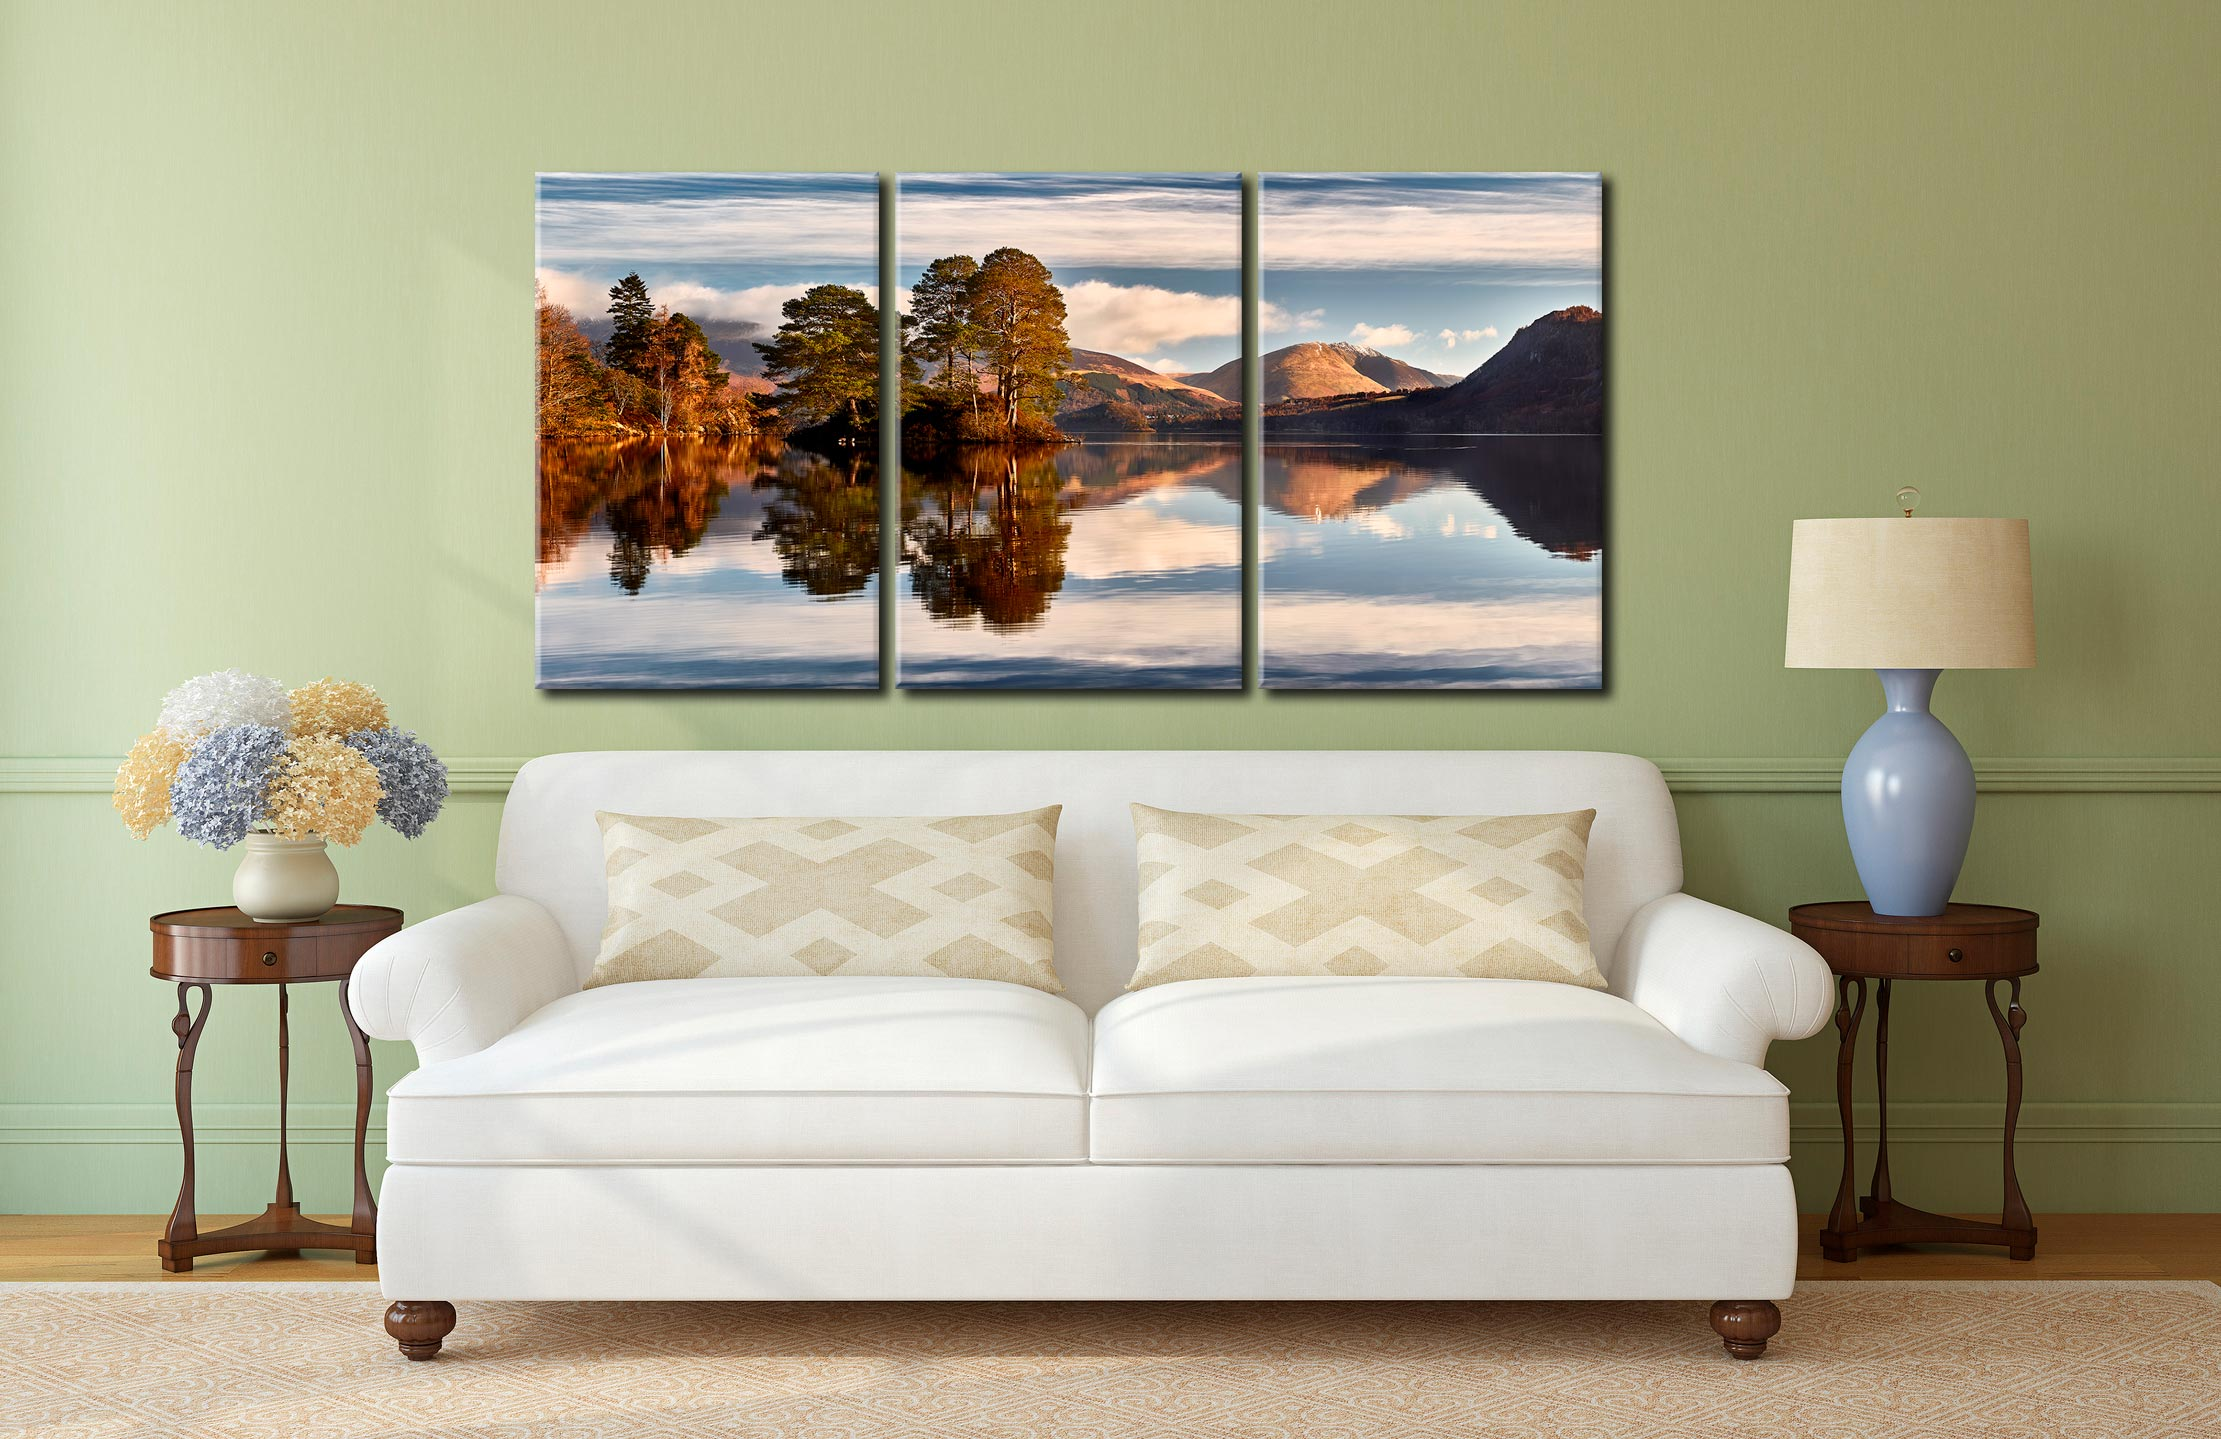 Otter Island in Derwent Water - 3 Panel Canvas on Wall